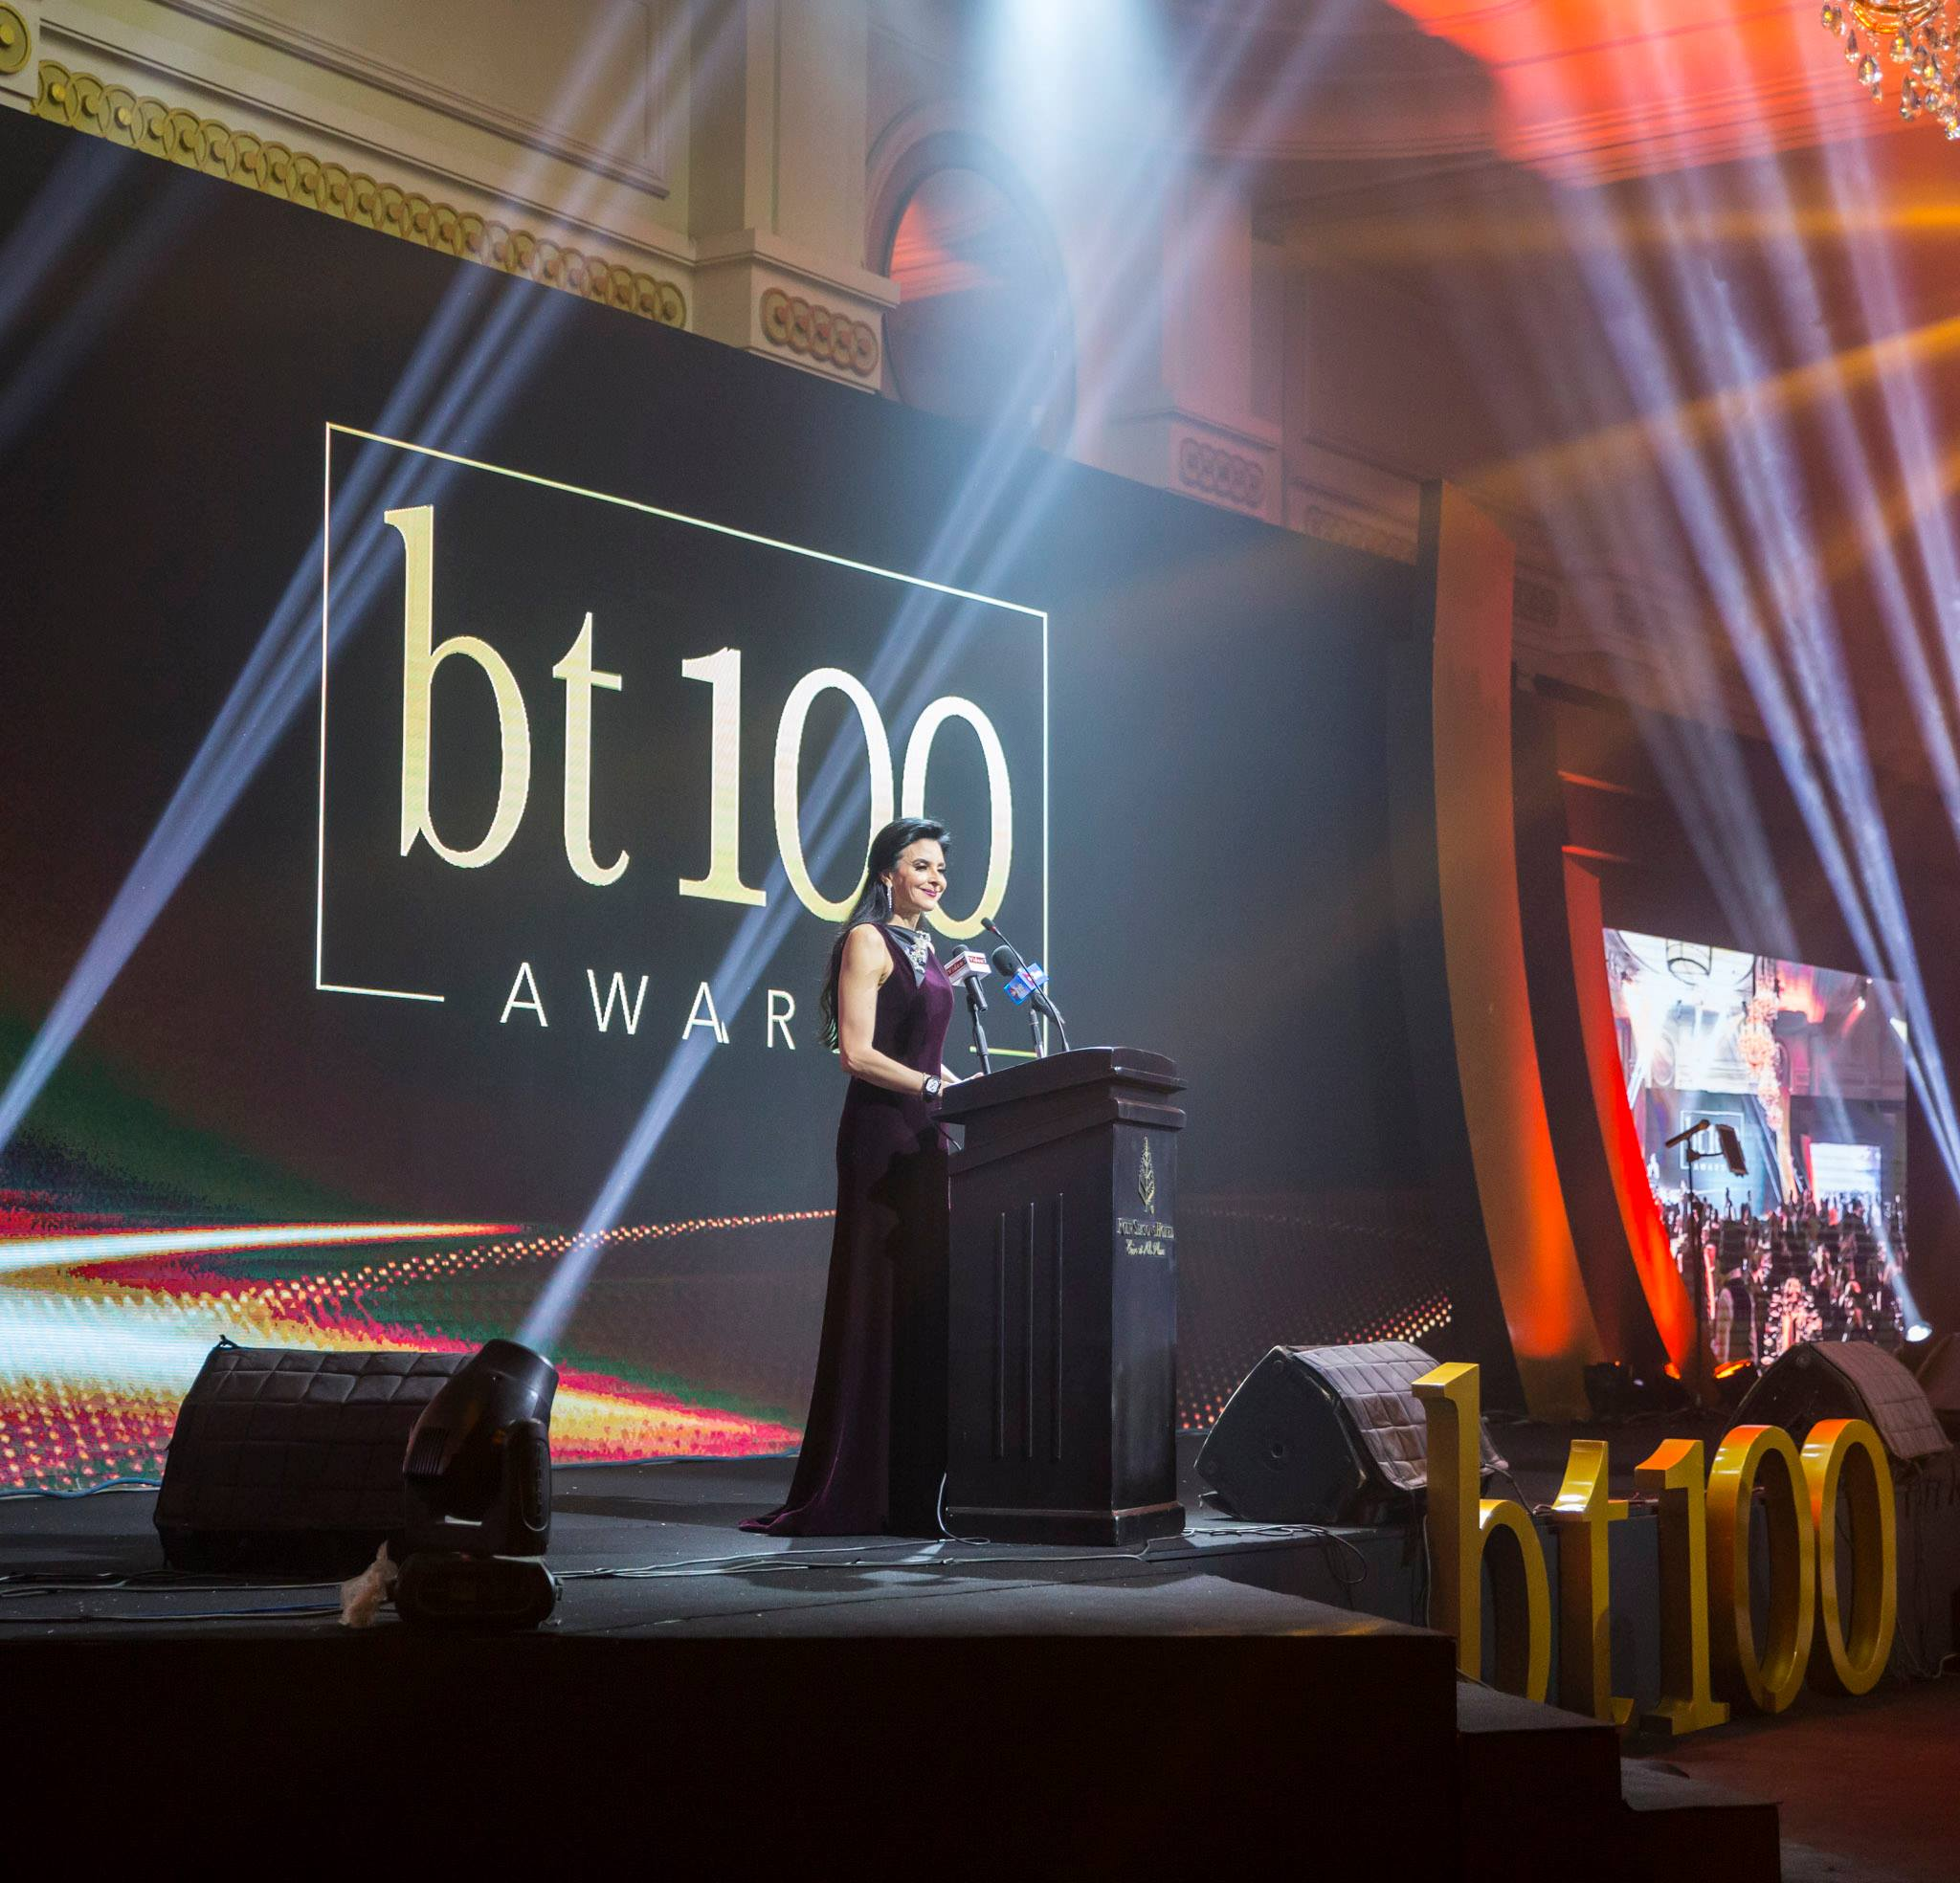 Bt100 Awards Ceremony